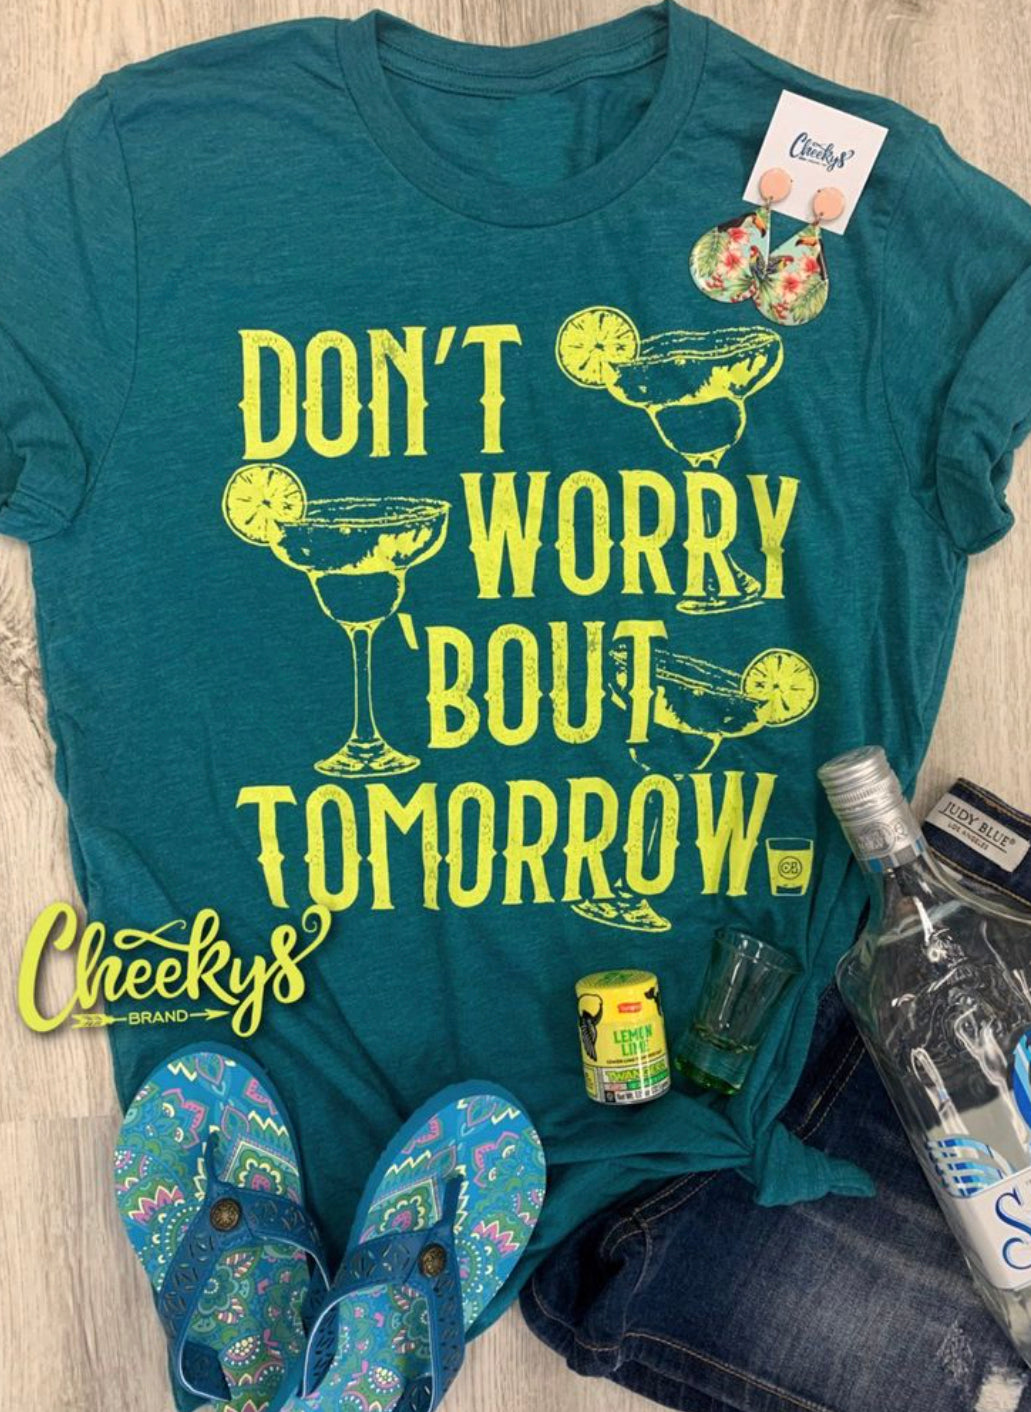 Don't Worry About Tomorrow Teal Graphic T-Shirt